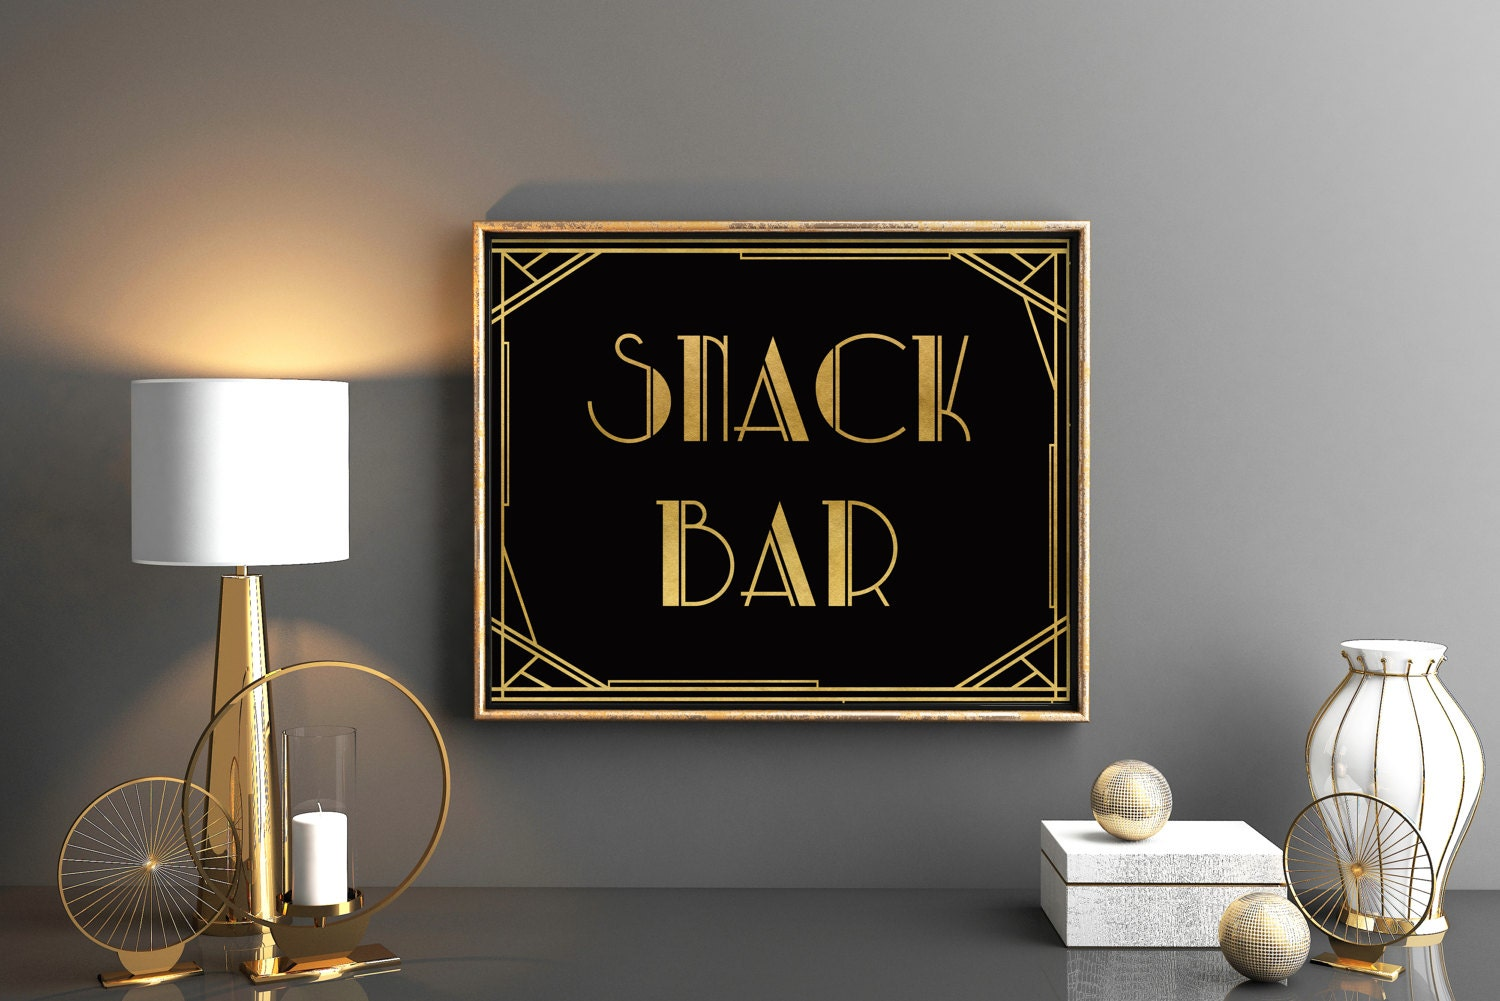 Great Gatsby party sign Snack bar art deco decor sign Roaring twenties  party sign Snack bar Prohibitions party great gatsby decorations